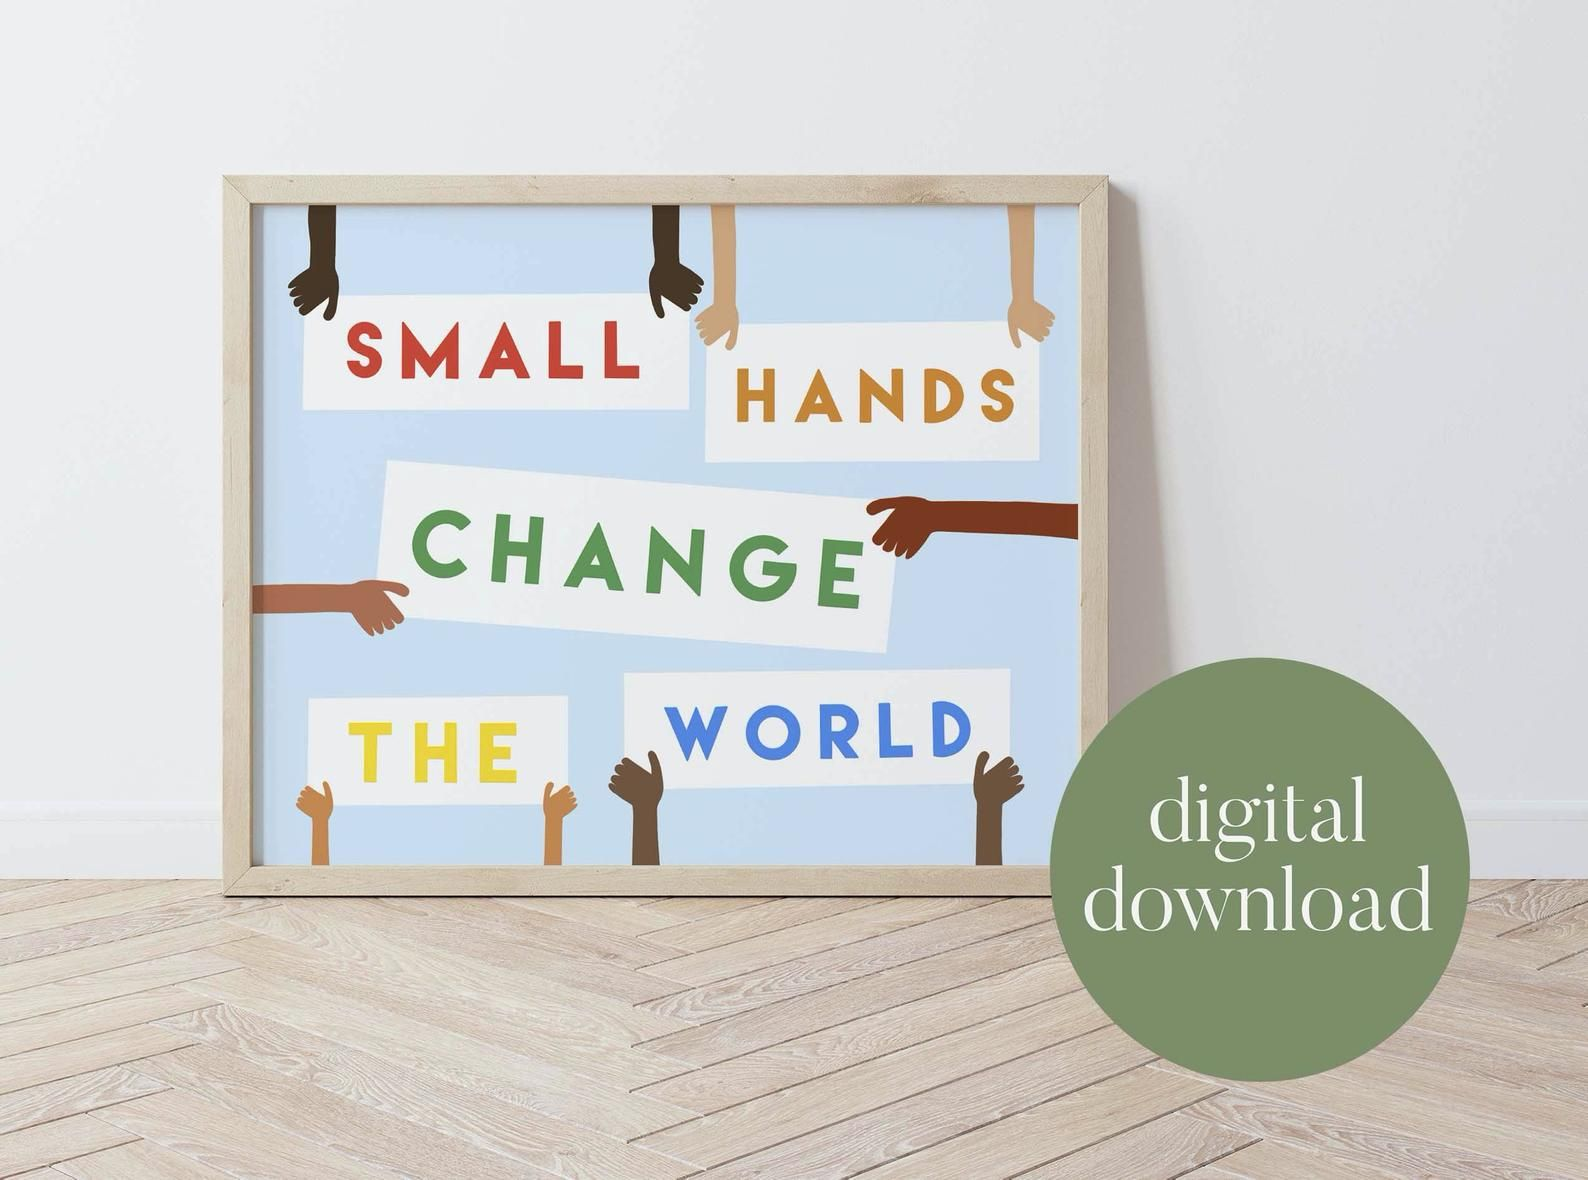 Change The World Diversity Wall Art Classroom Decor Kid Etsy Art Classroom Decor Classroom Decor Art Classroom